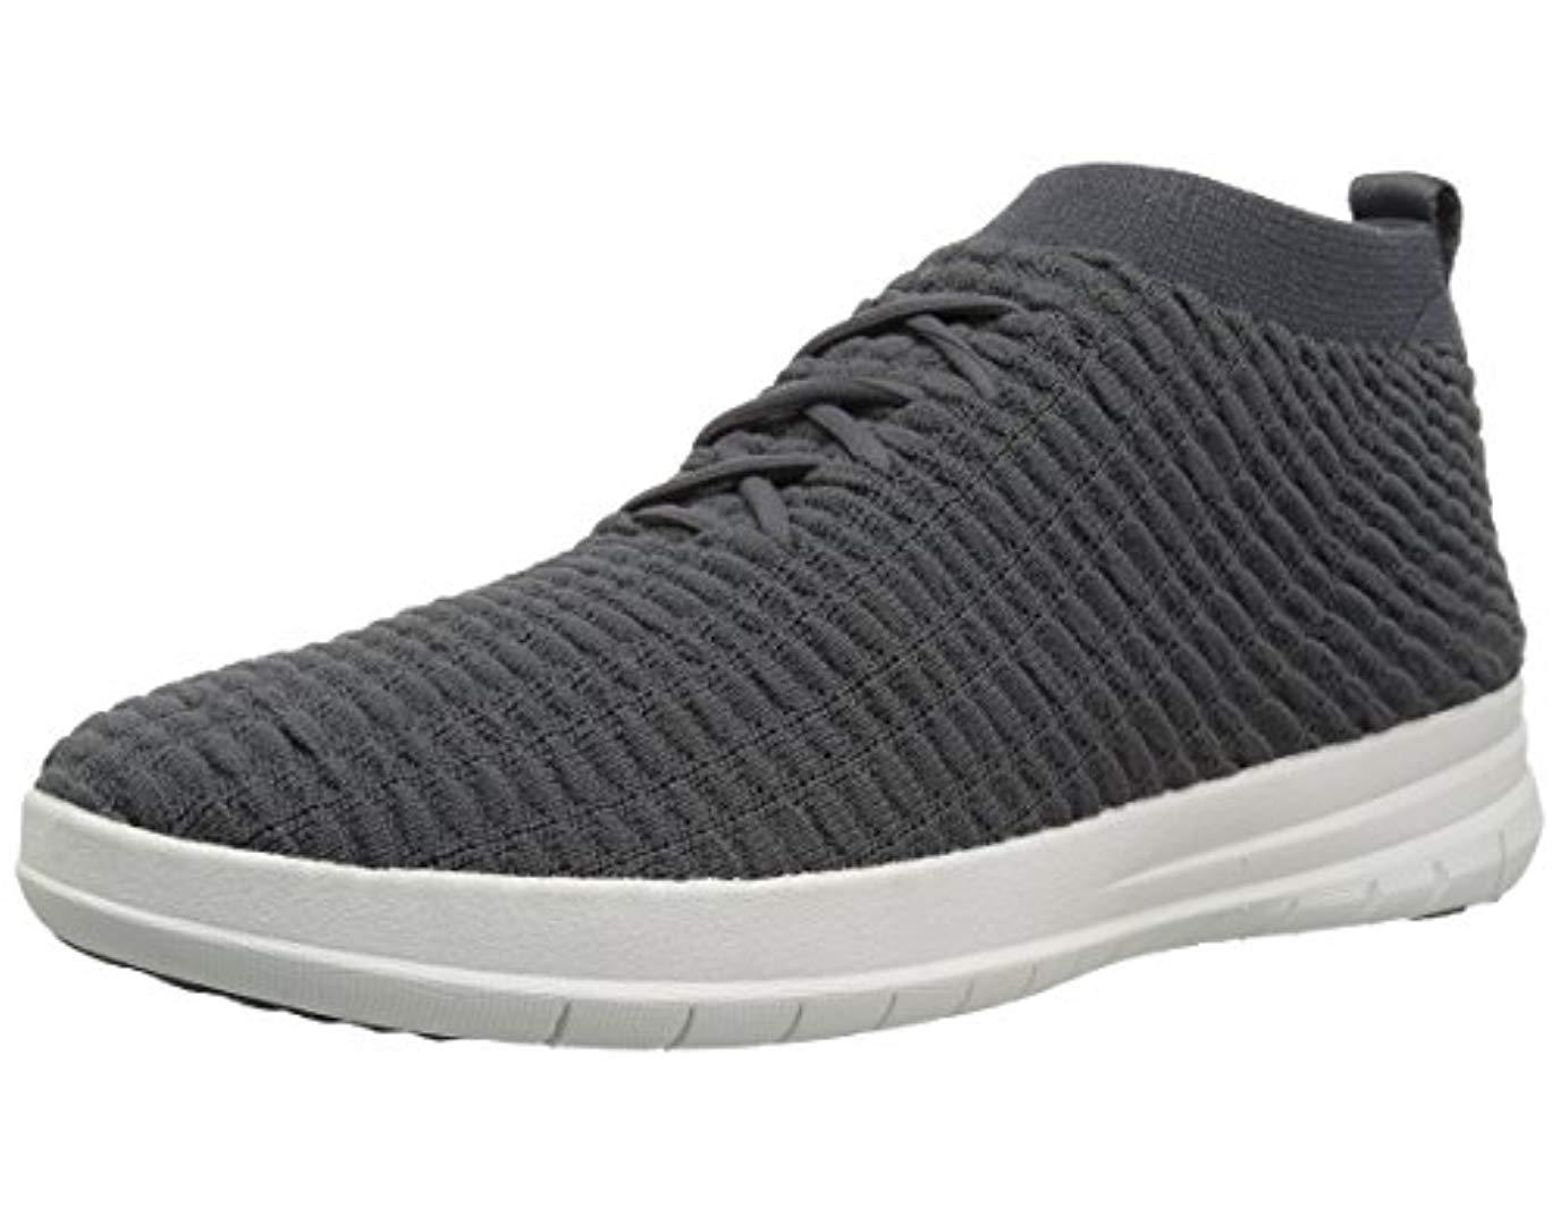 e235d97a7619d Fitflop Uberknit Slip-on High Top Sneaker In Waffle Knit in Gray for Men -  Save 11% - Lyst